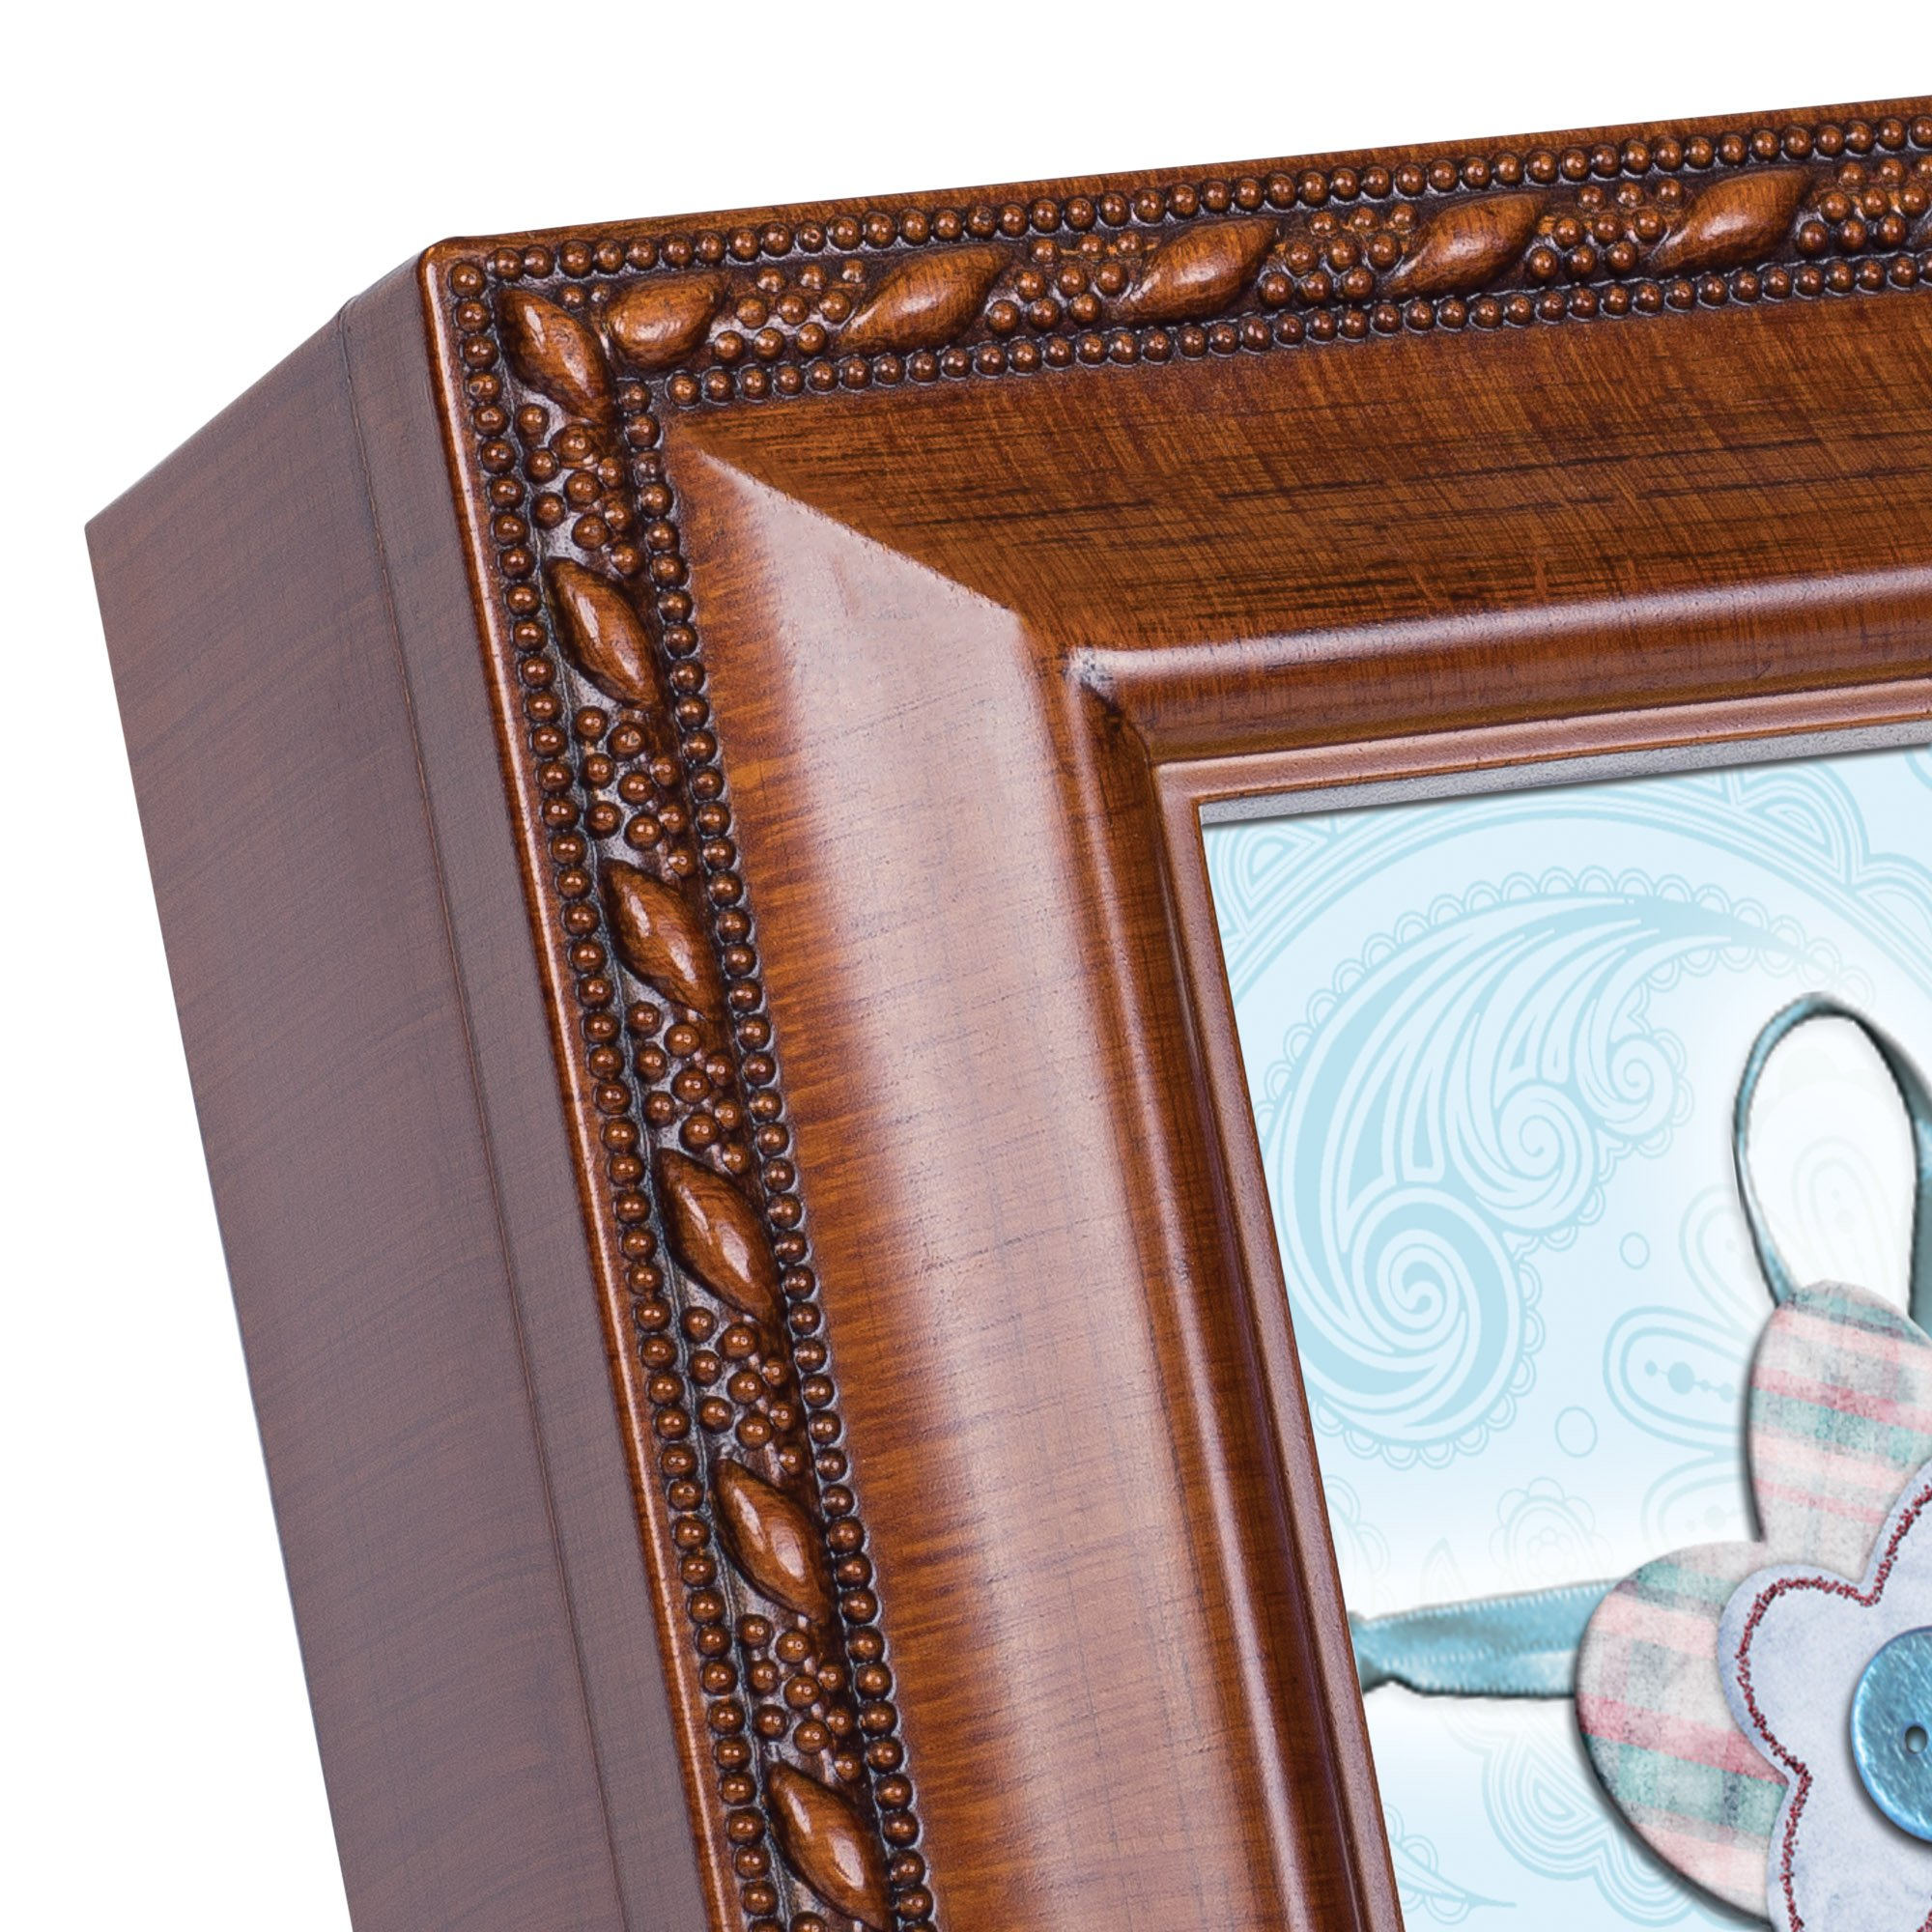 Cottage Garden Baptized In The Name Woodgrain Music Box/Jewelry Box Plays Jesus Loves Me by Cottage Garden (Image #3)